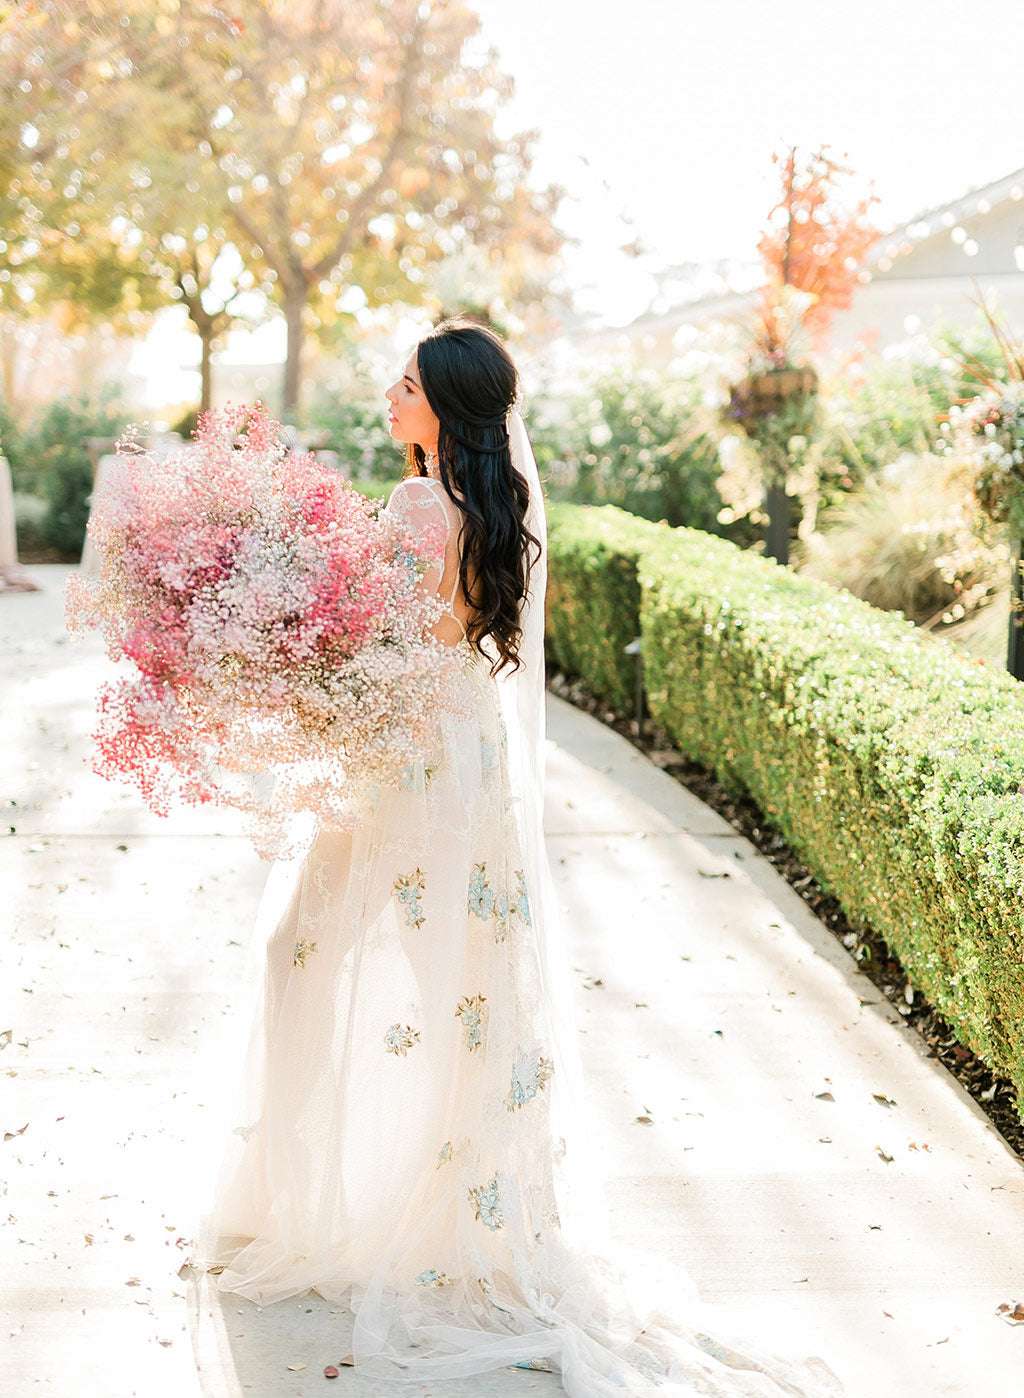 Bride in Chrysalis Wedding Dress by Claire Pettibone